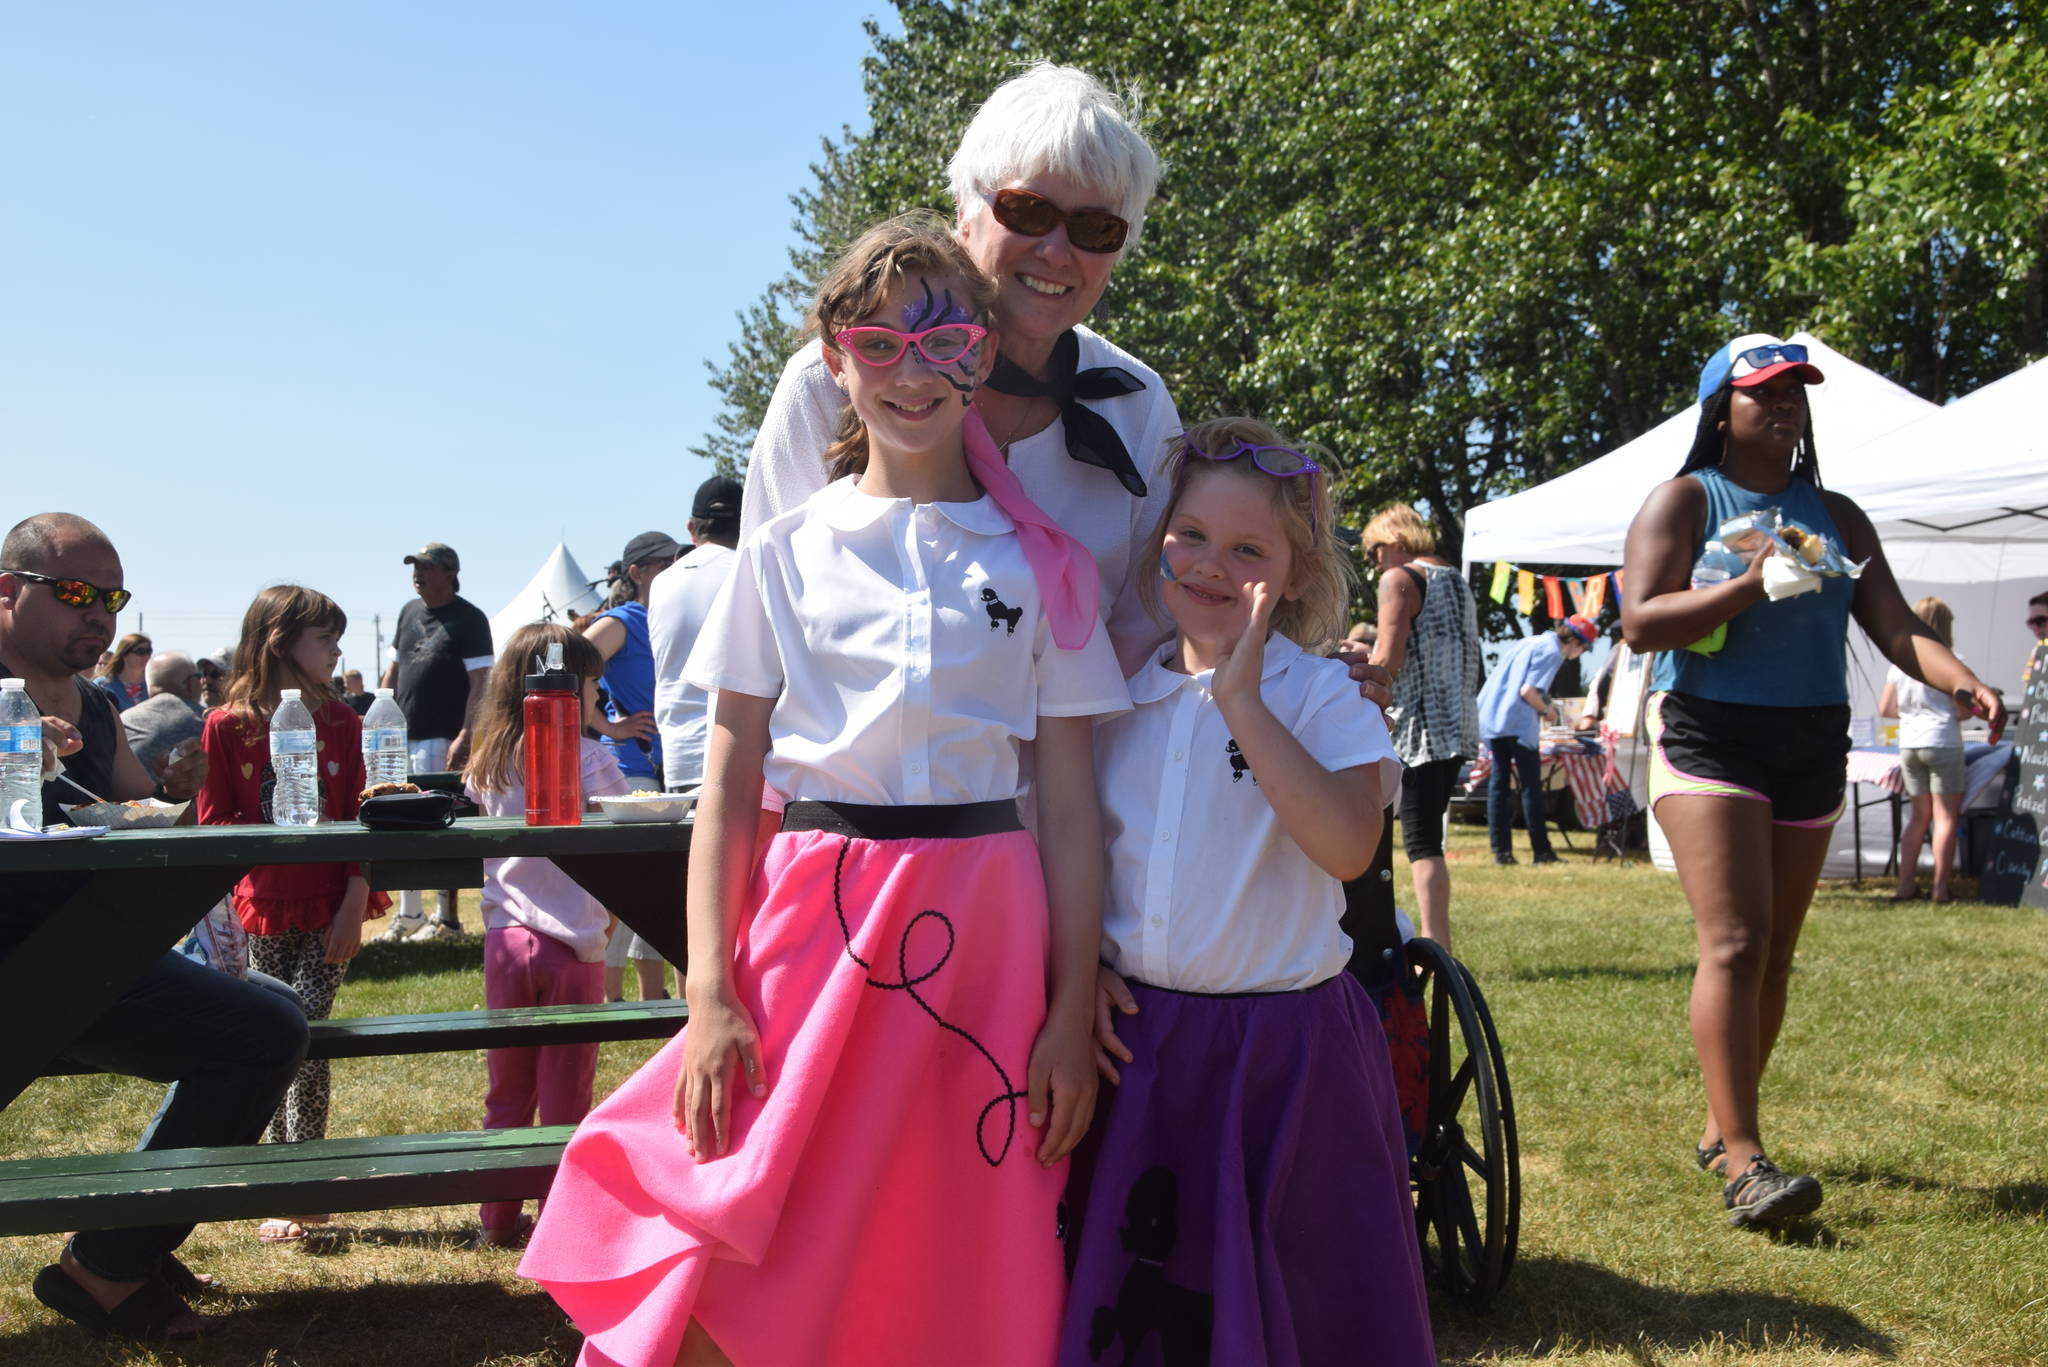 Dorothy Gray and her granddaughters Leah and Eileen Arness smile for the camera at the Kenai Park Strip during the July 4th parade in Kenai, Alaska. (Photo by Brian Mazurek/Peninsula Clarion)